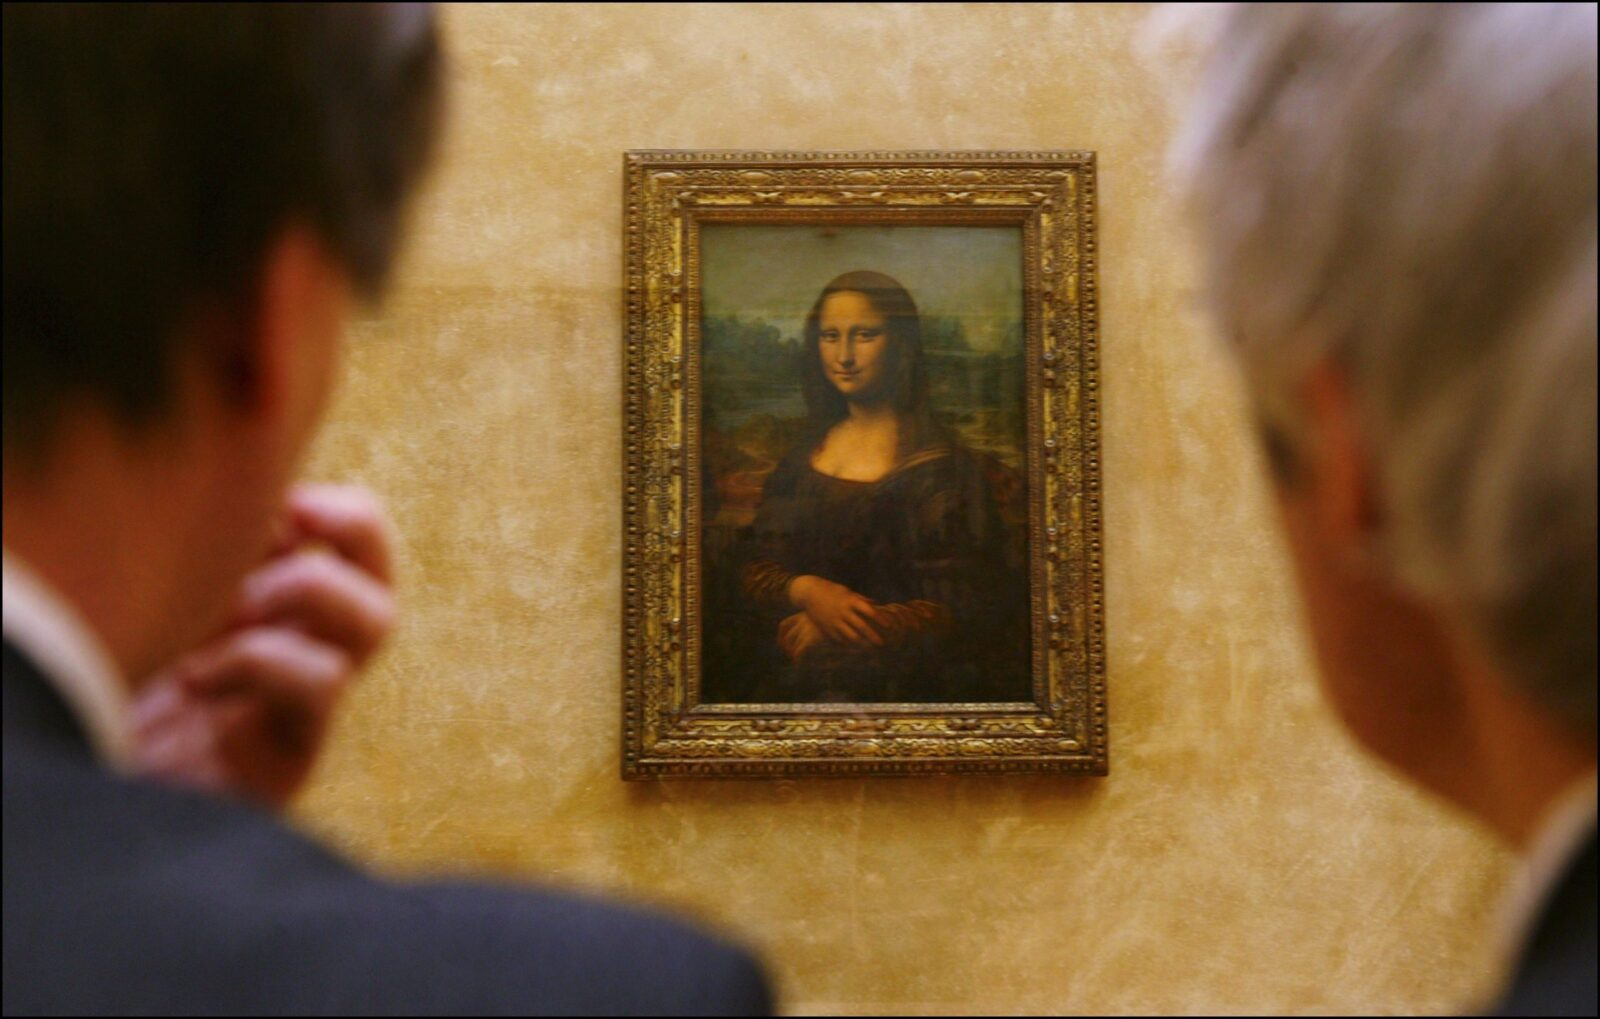 The Louvre will open in July